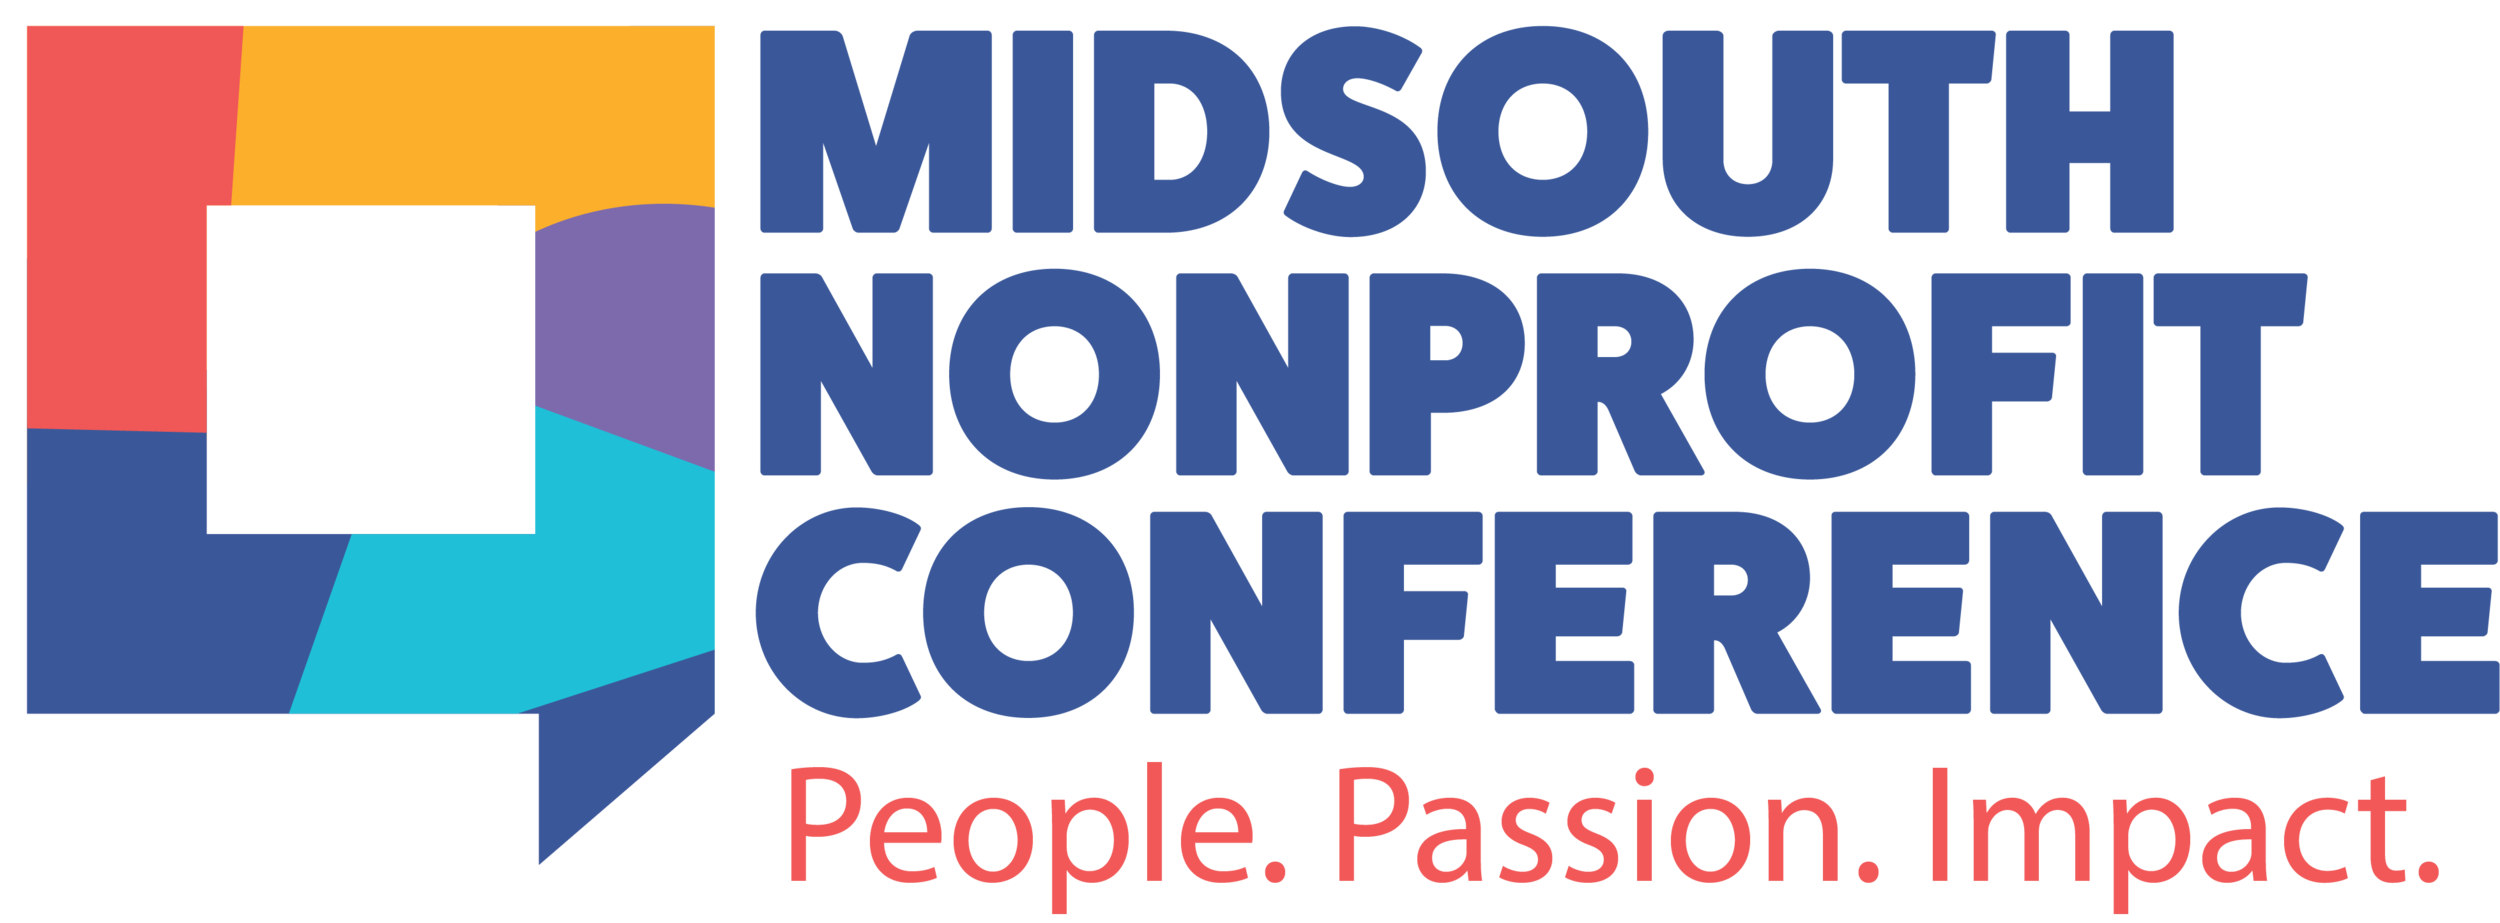 2019_Midsouth Nonprofit Conference_Primary Logo.png